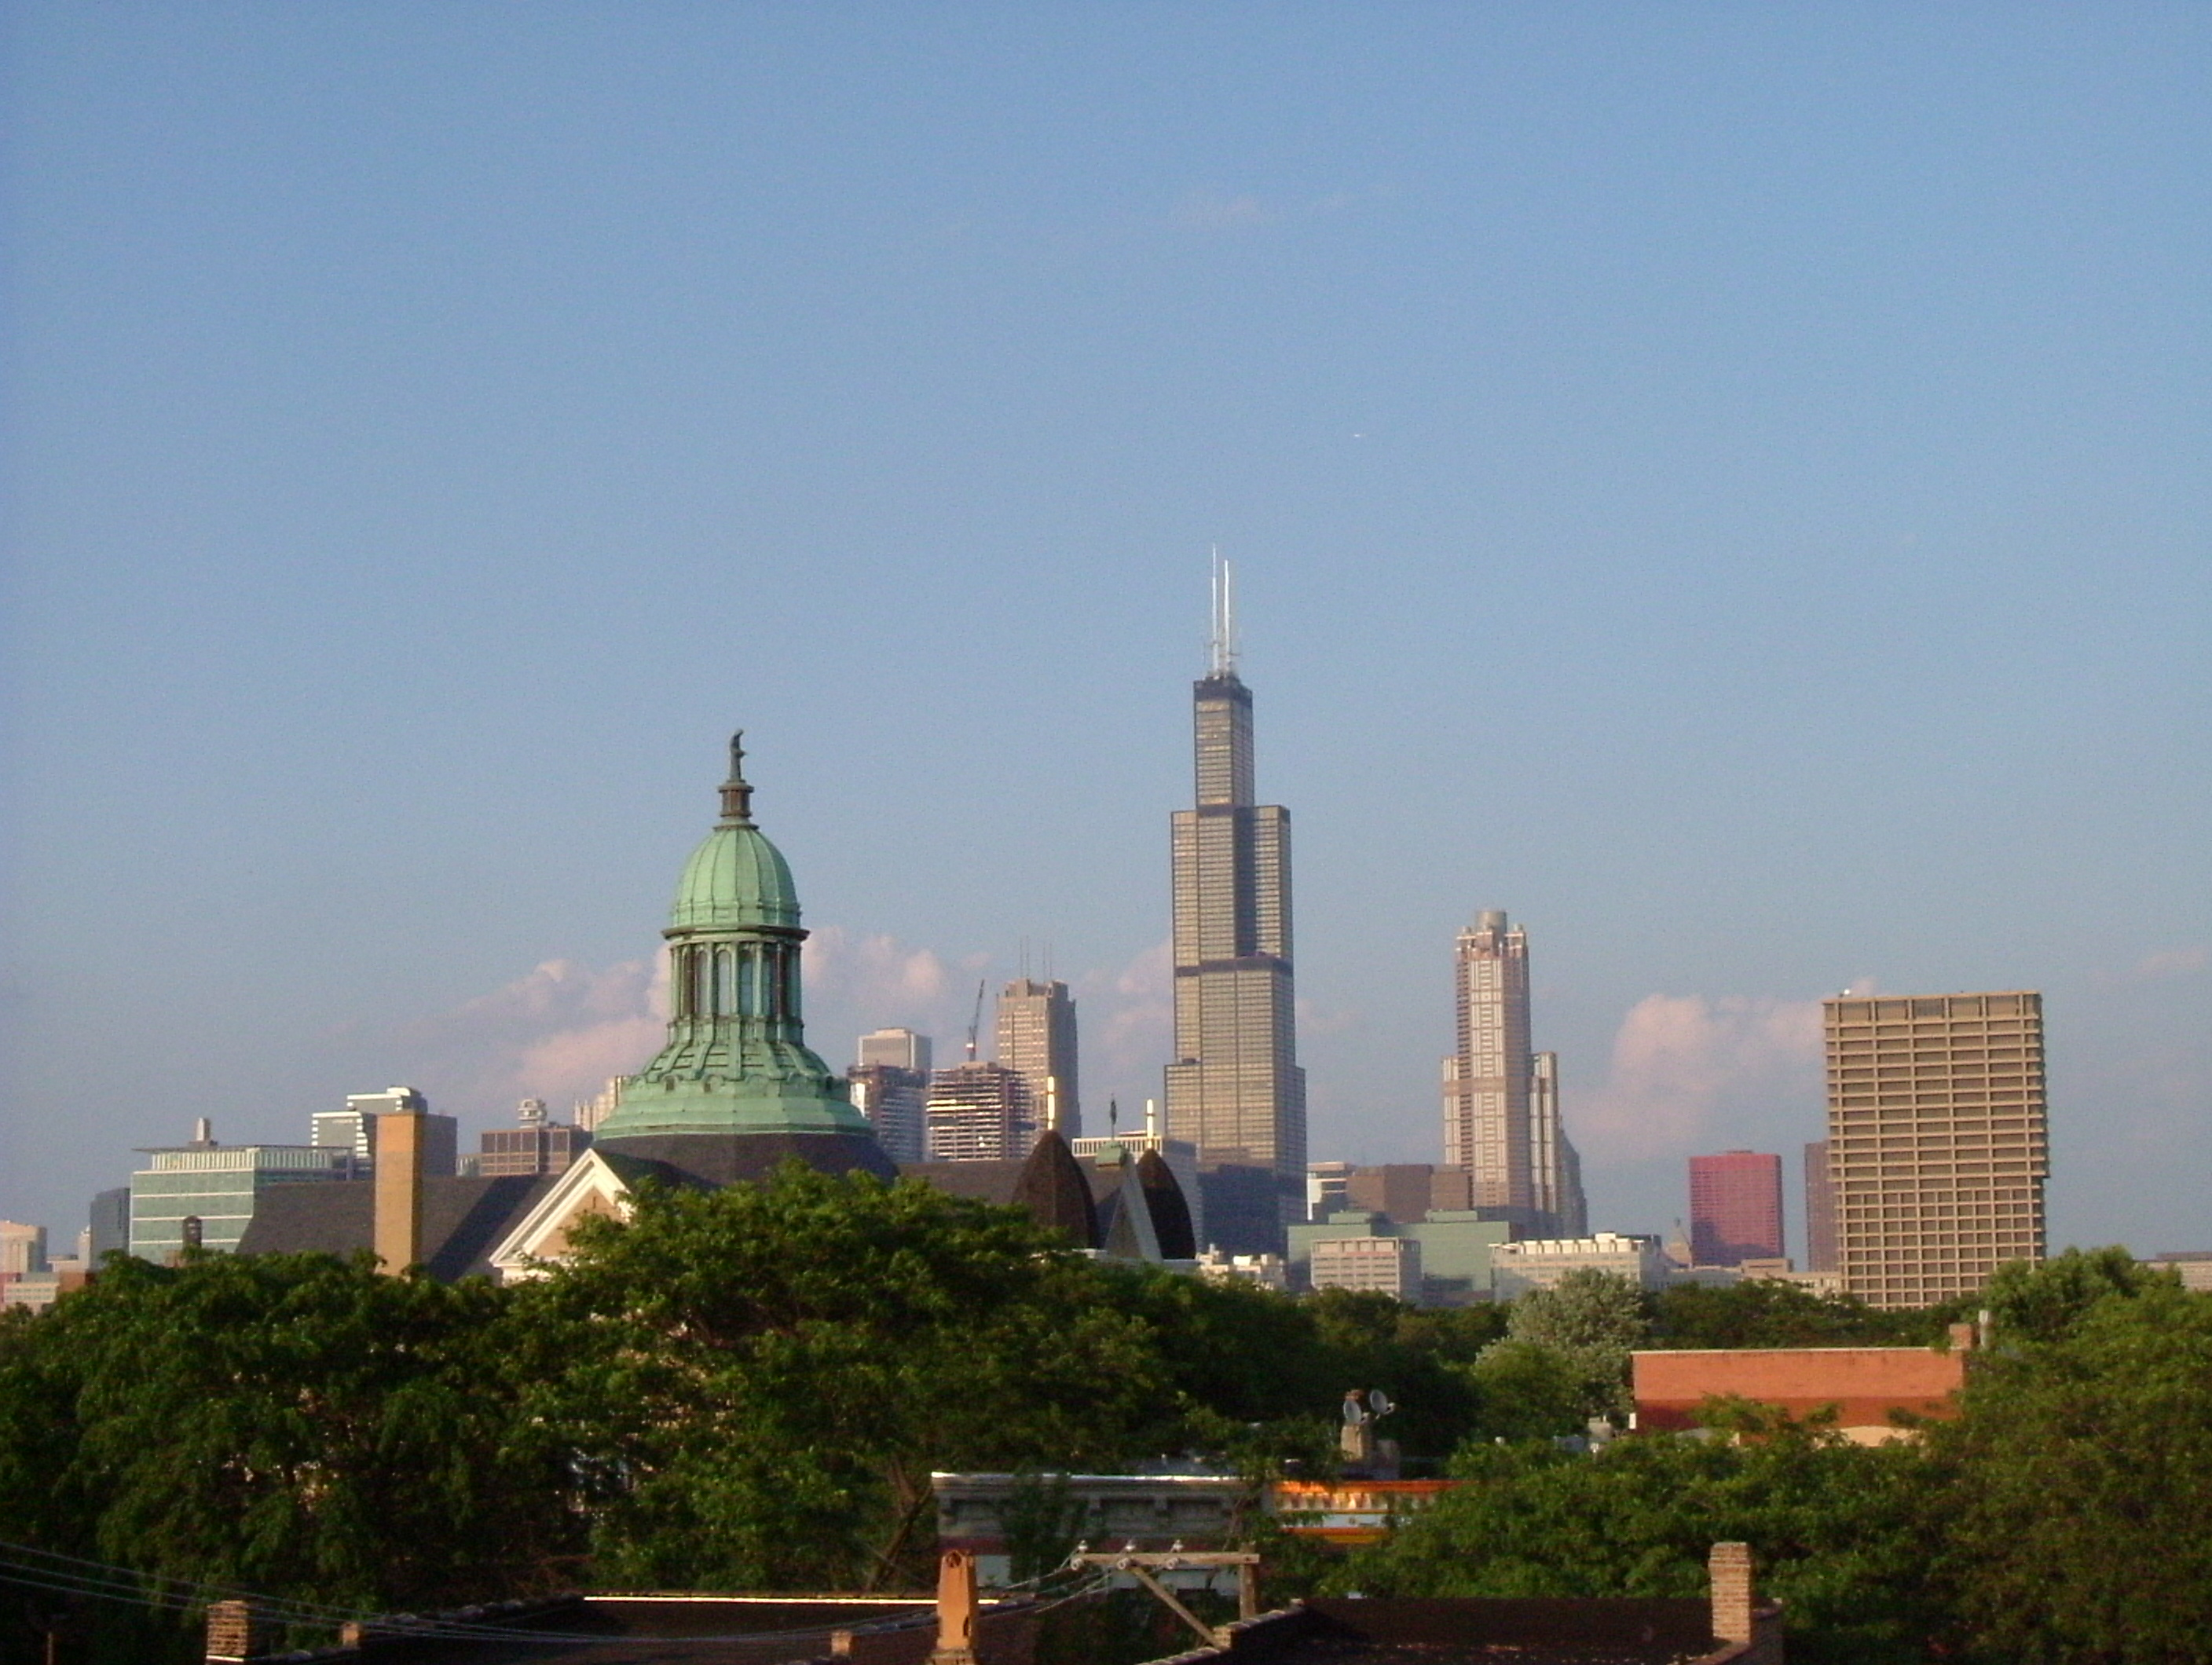 Chicago skyline from my childhood home (apartment building)